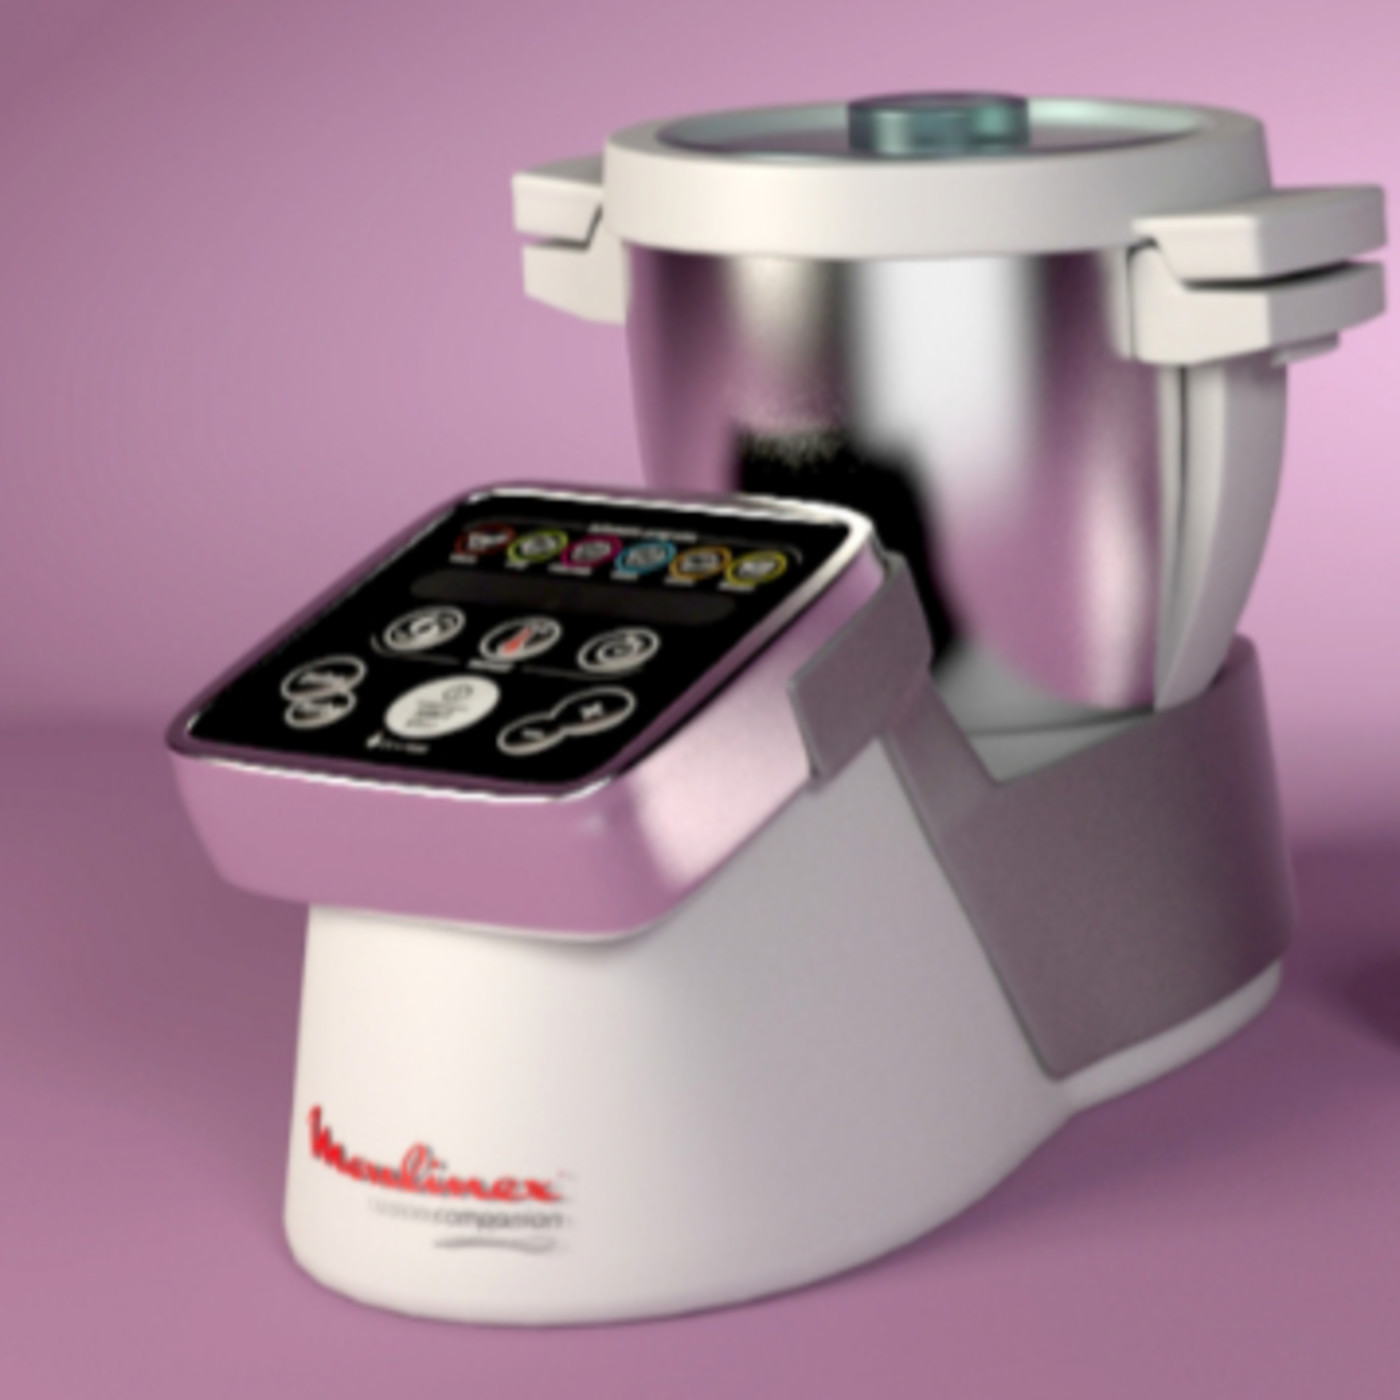 Robot Cuisine Thermomix Prix I Companion Vs Thermomix Comparativa Thermomix Vs